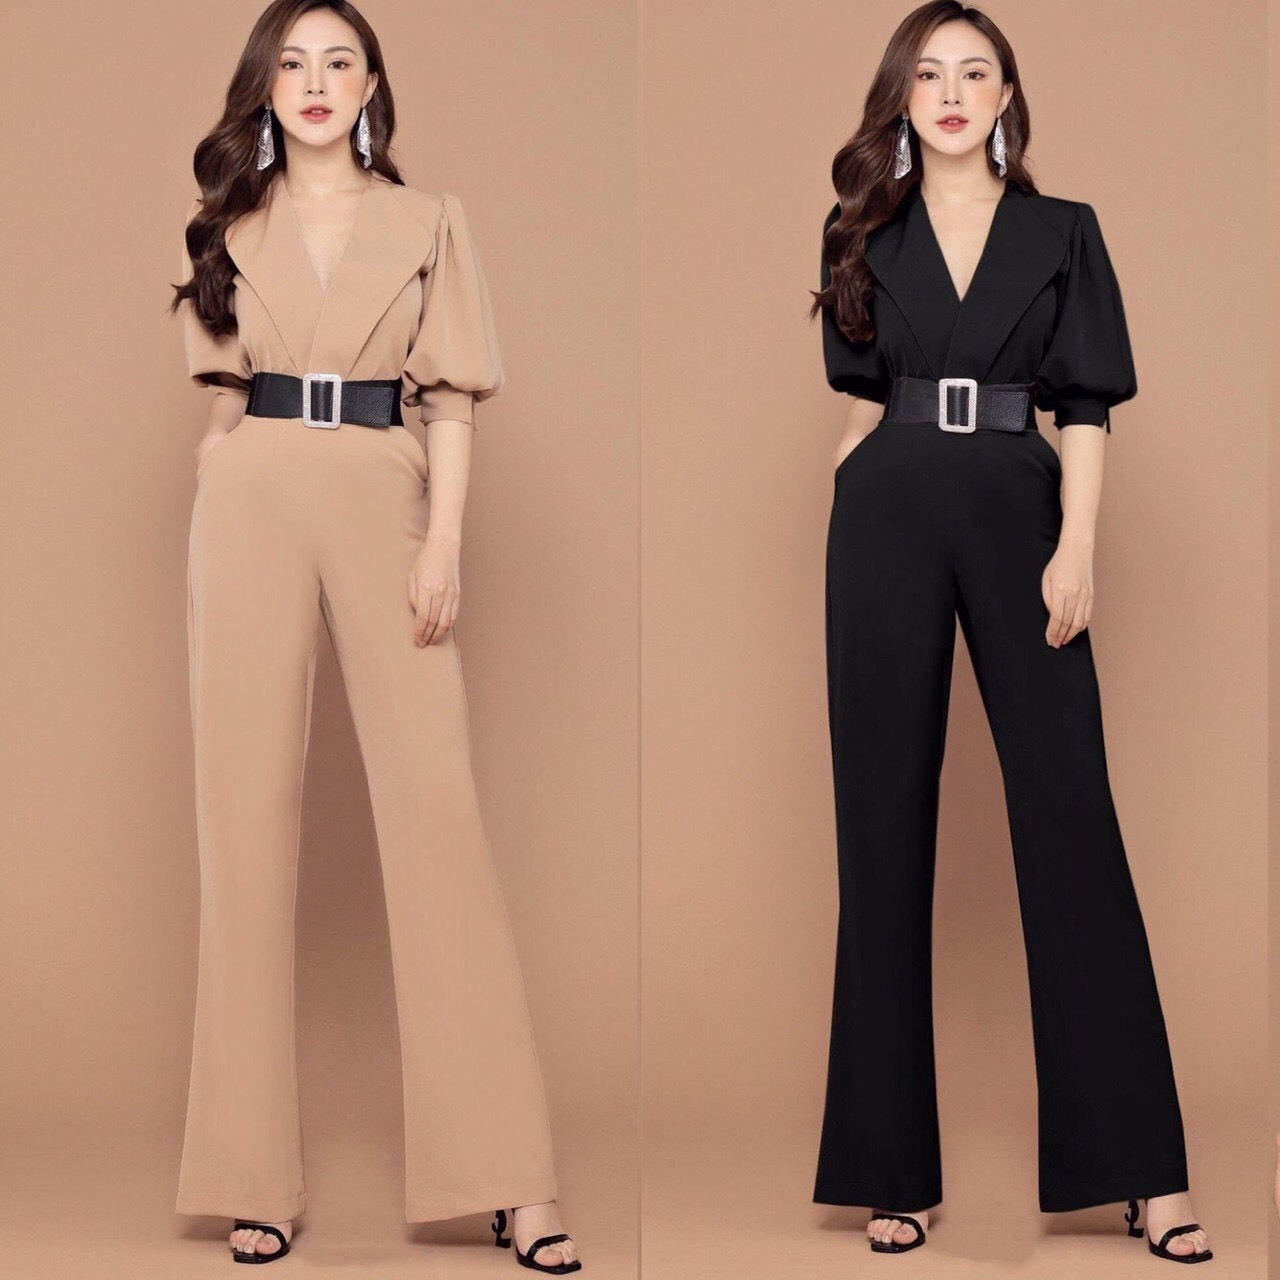 Jumpsuit cổ vest tay phồng thanh lịch